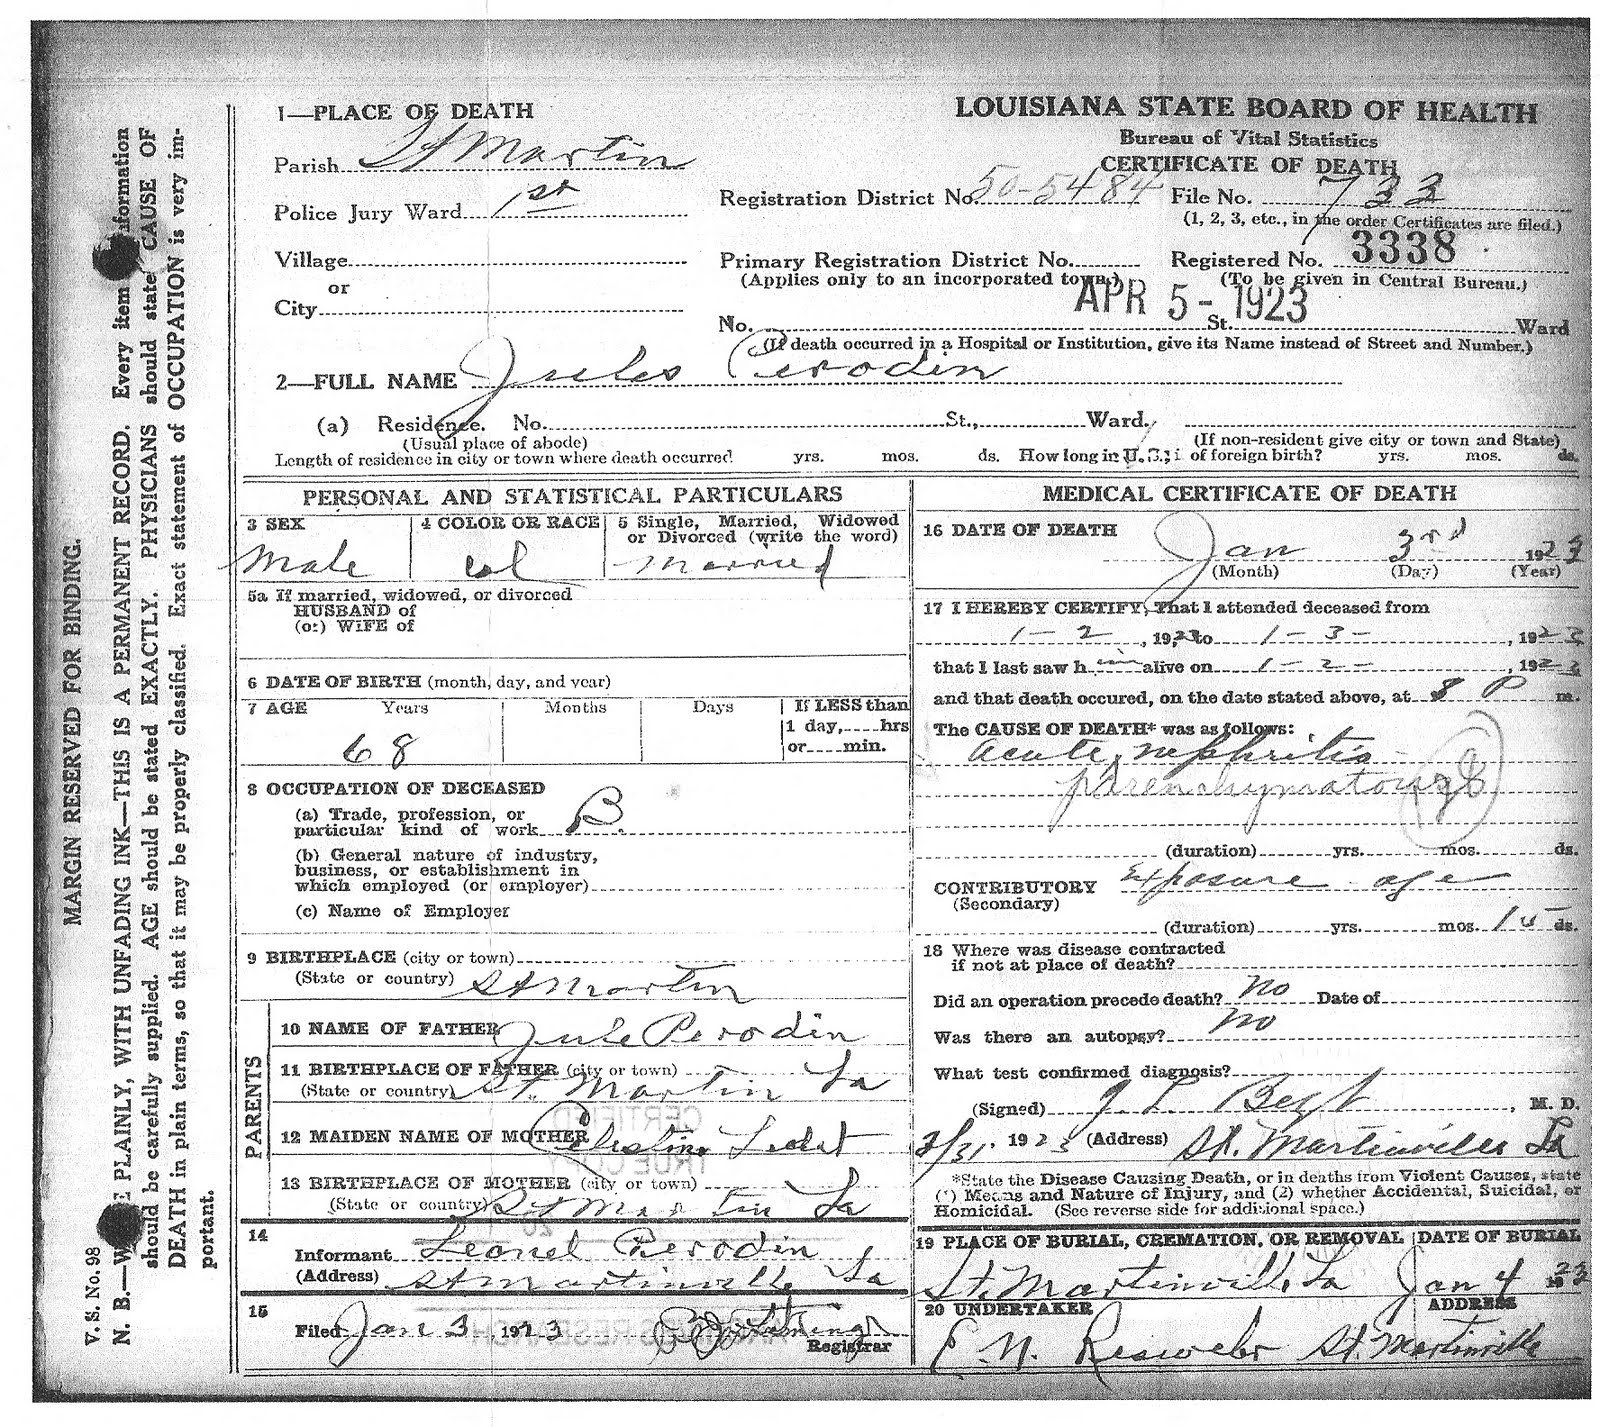 Family history angie sandro finding jules perrodin of microfilmed death certificates for deaths that occurred in louisiana between 19111960 i was able to order a copy of jules death certificate xflitez Image collections